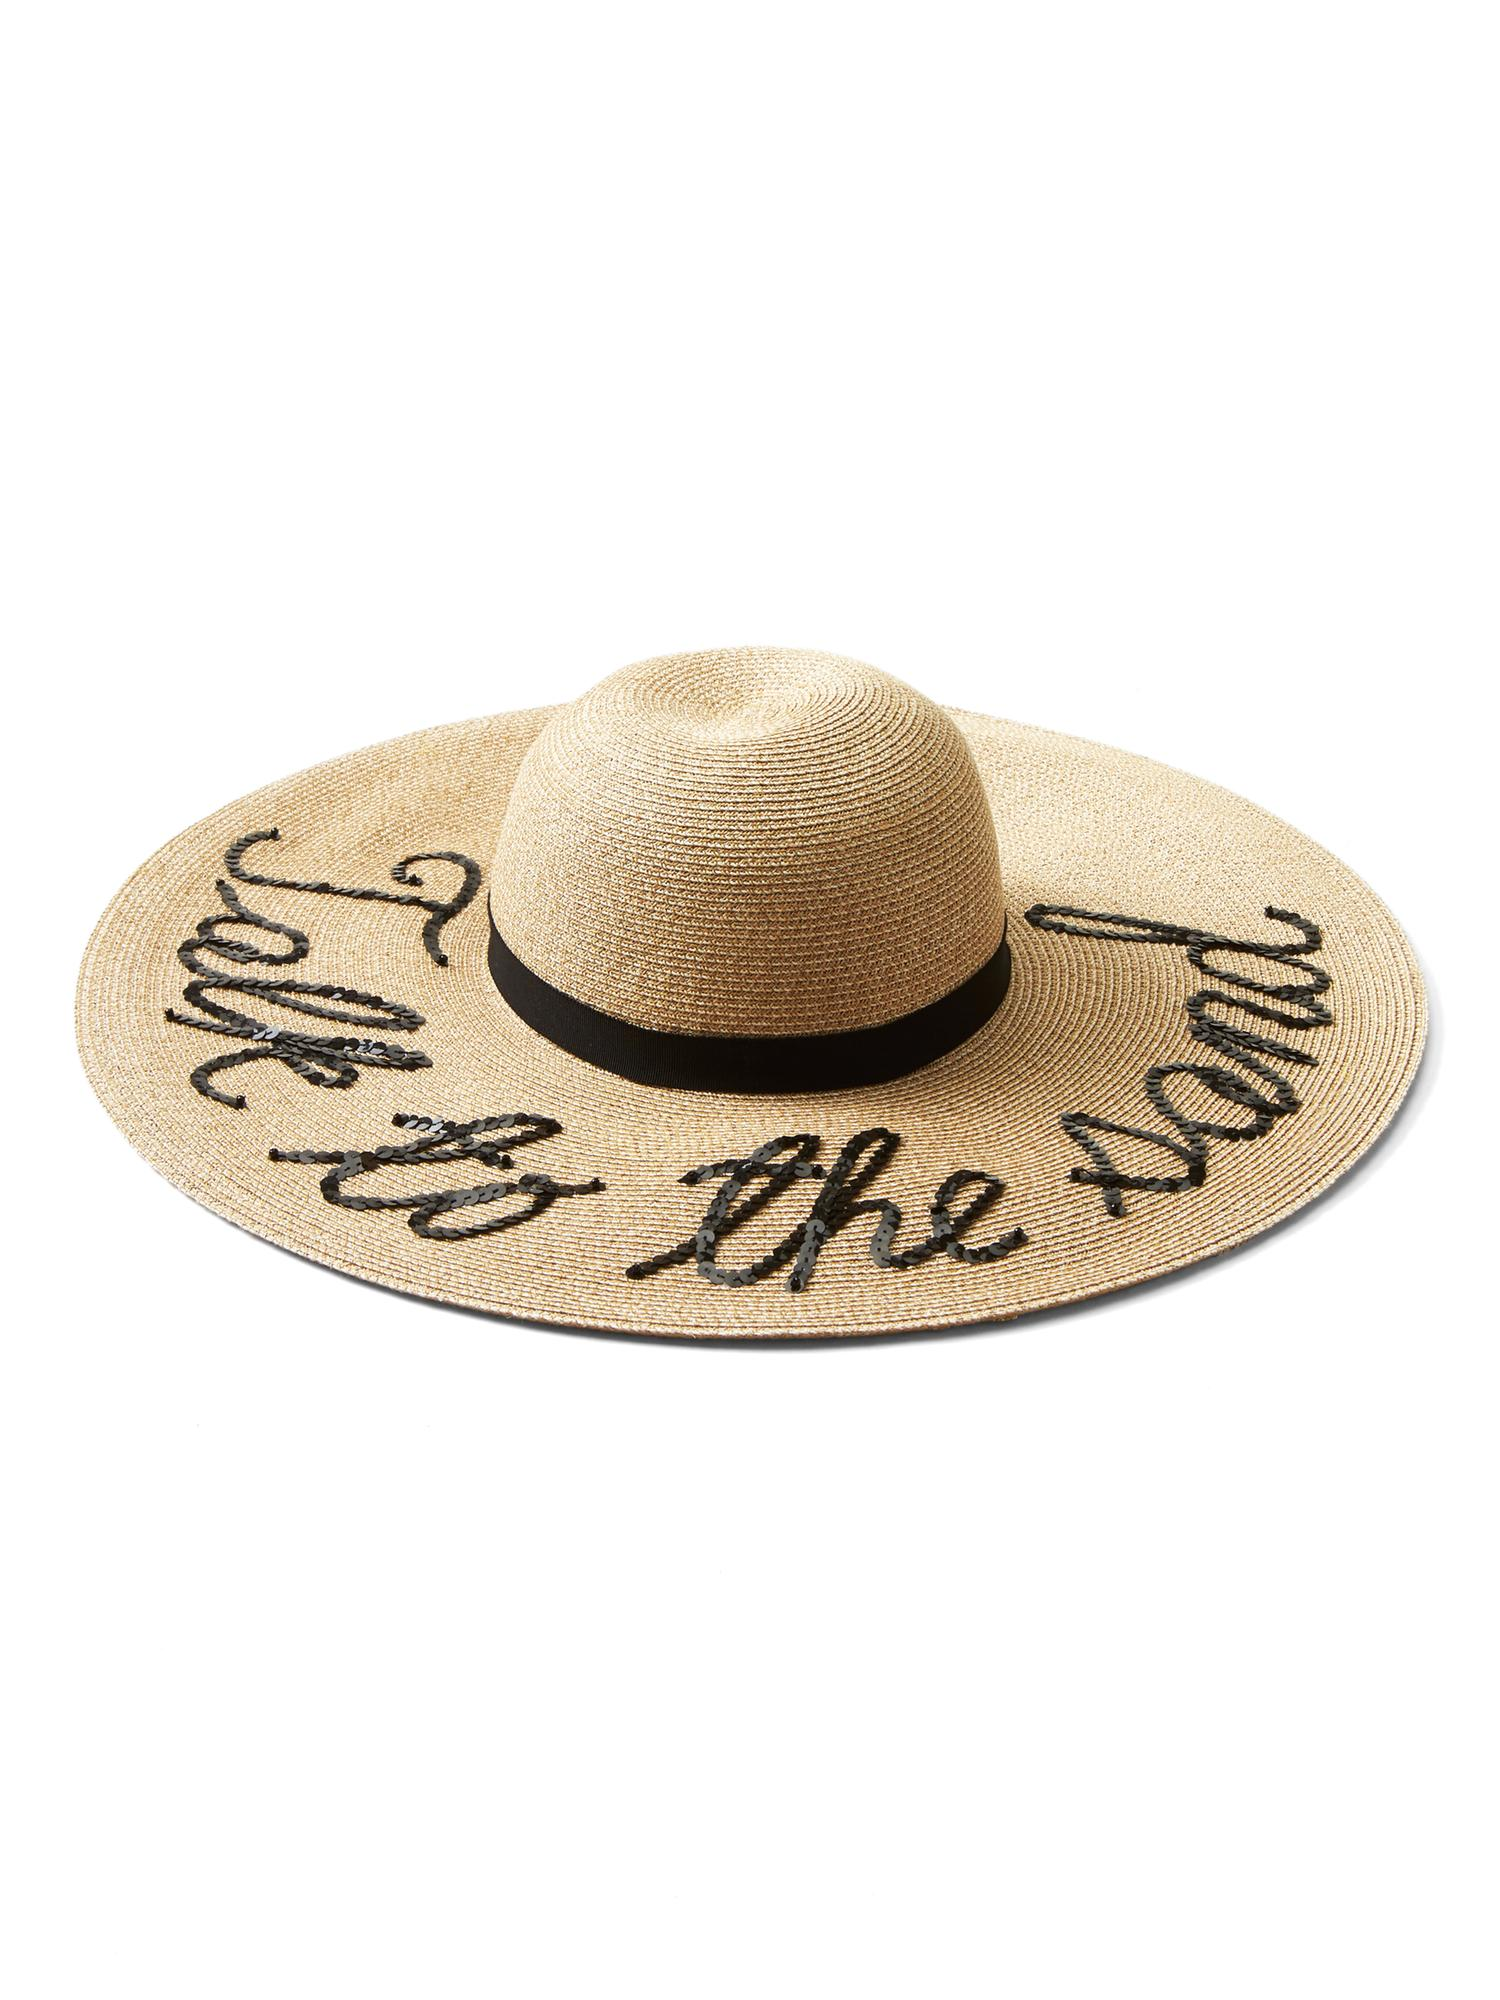 Bunny Embroidered Straw Sunhat - Sand Eugenia Kim